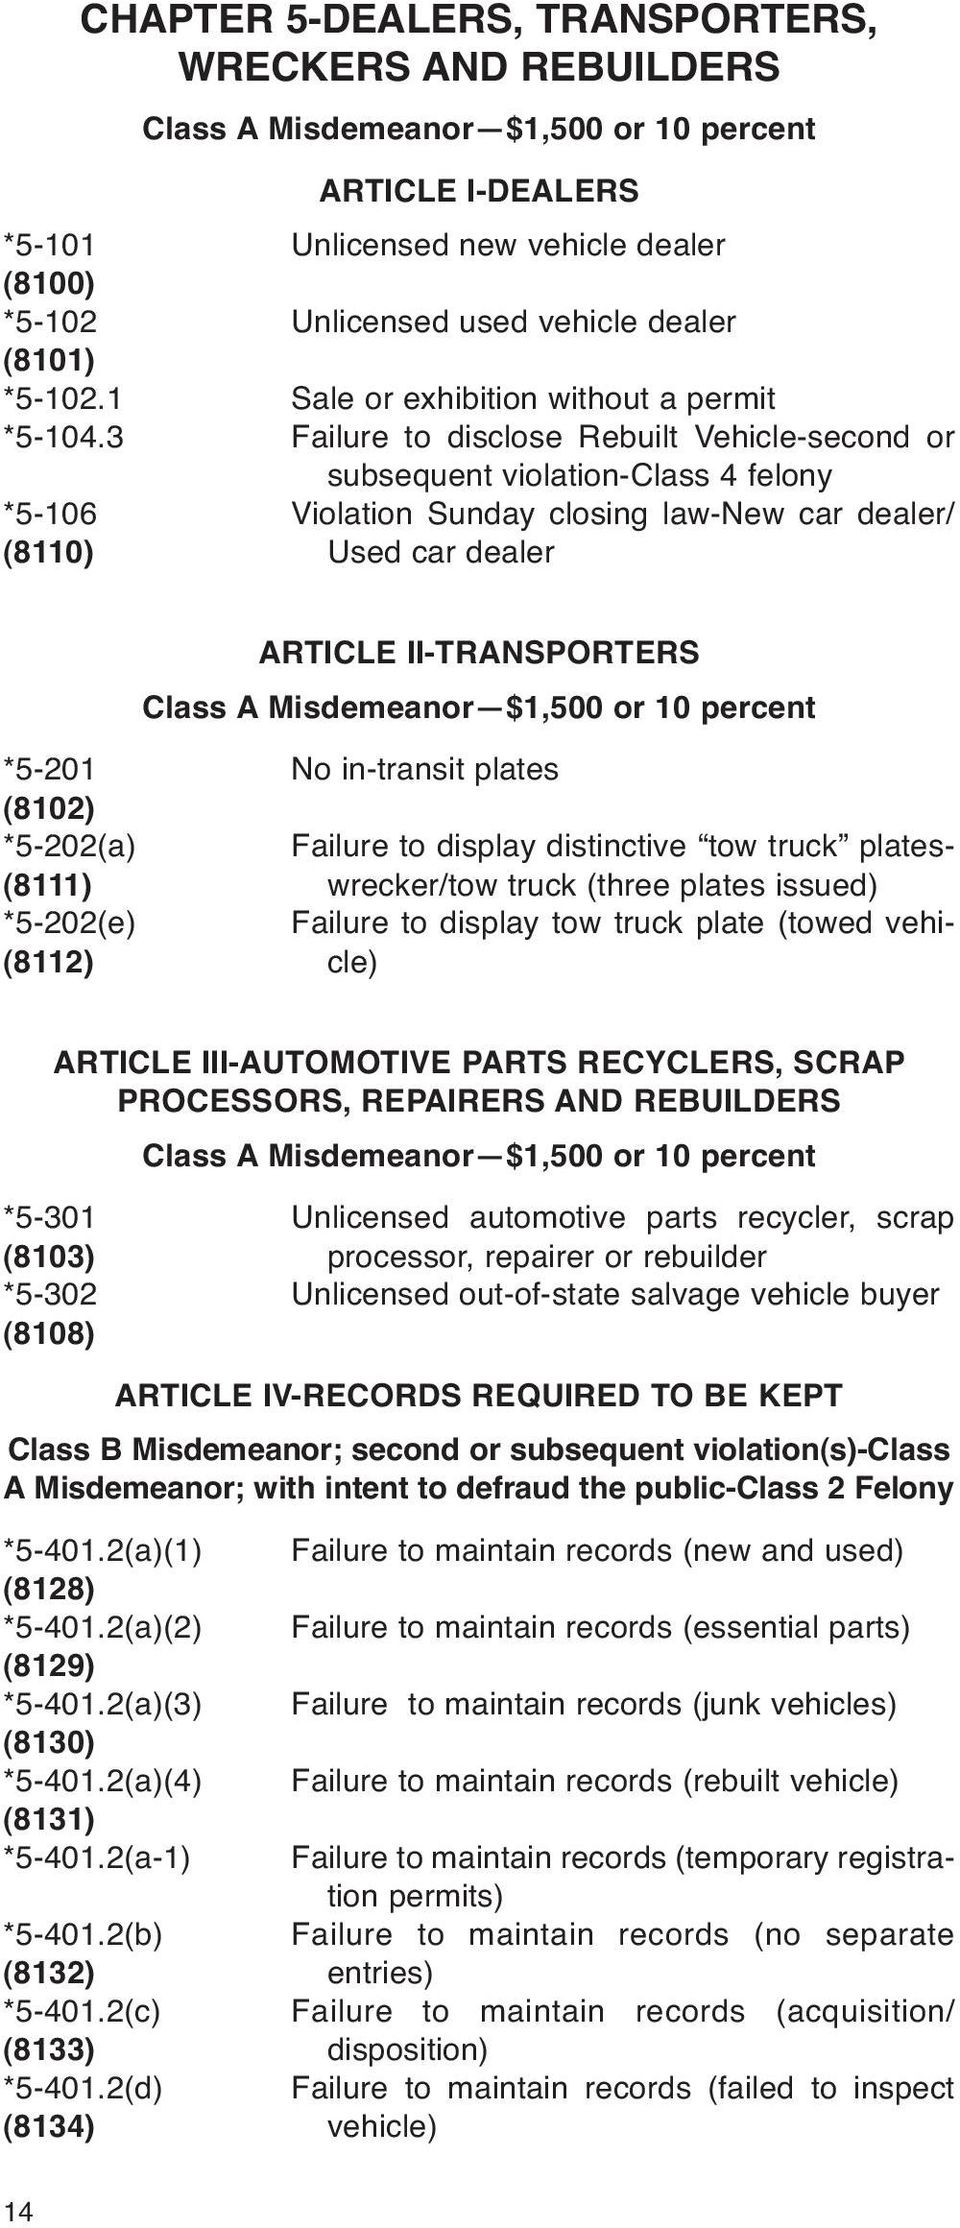 3 Failure to disclose Rebuilt Vehicle-second or subsequent violation-class 4 felony *5-106 Violation Sunday closing law-new car dealer/ (8110) Used car dealer ARTICLE II-TRANSPORTERS Class A